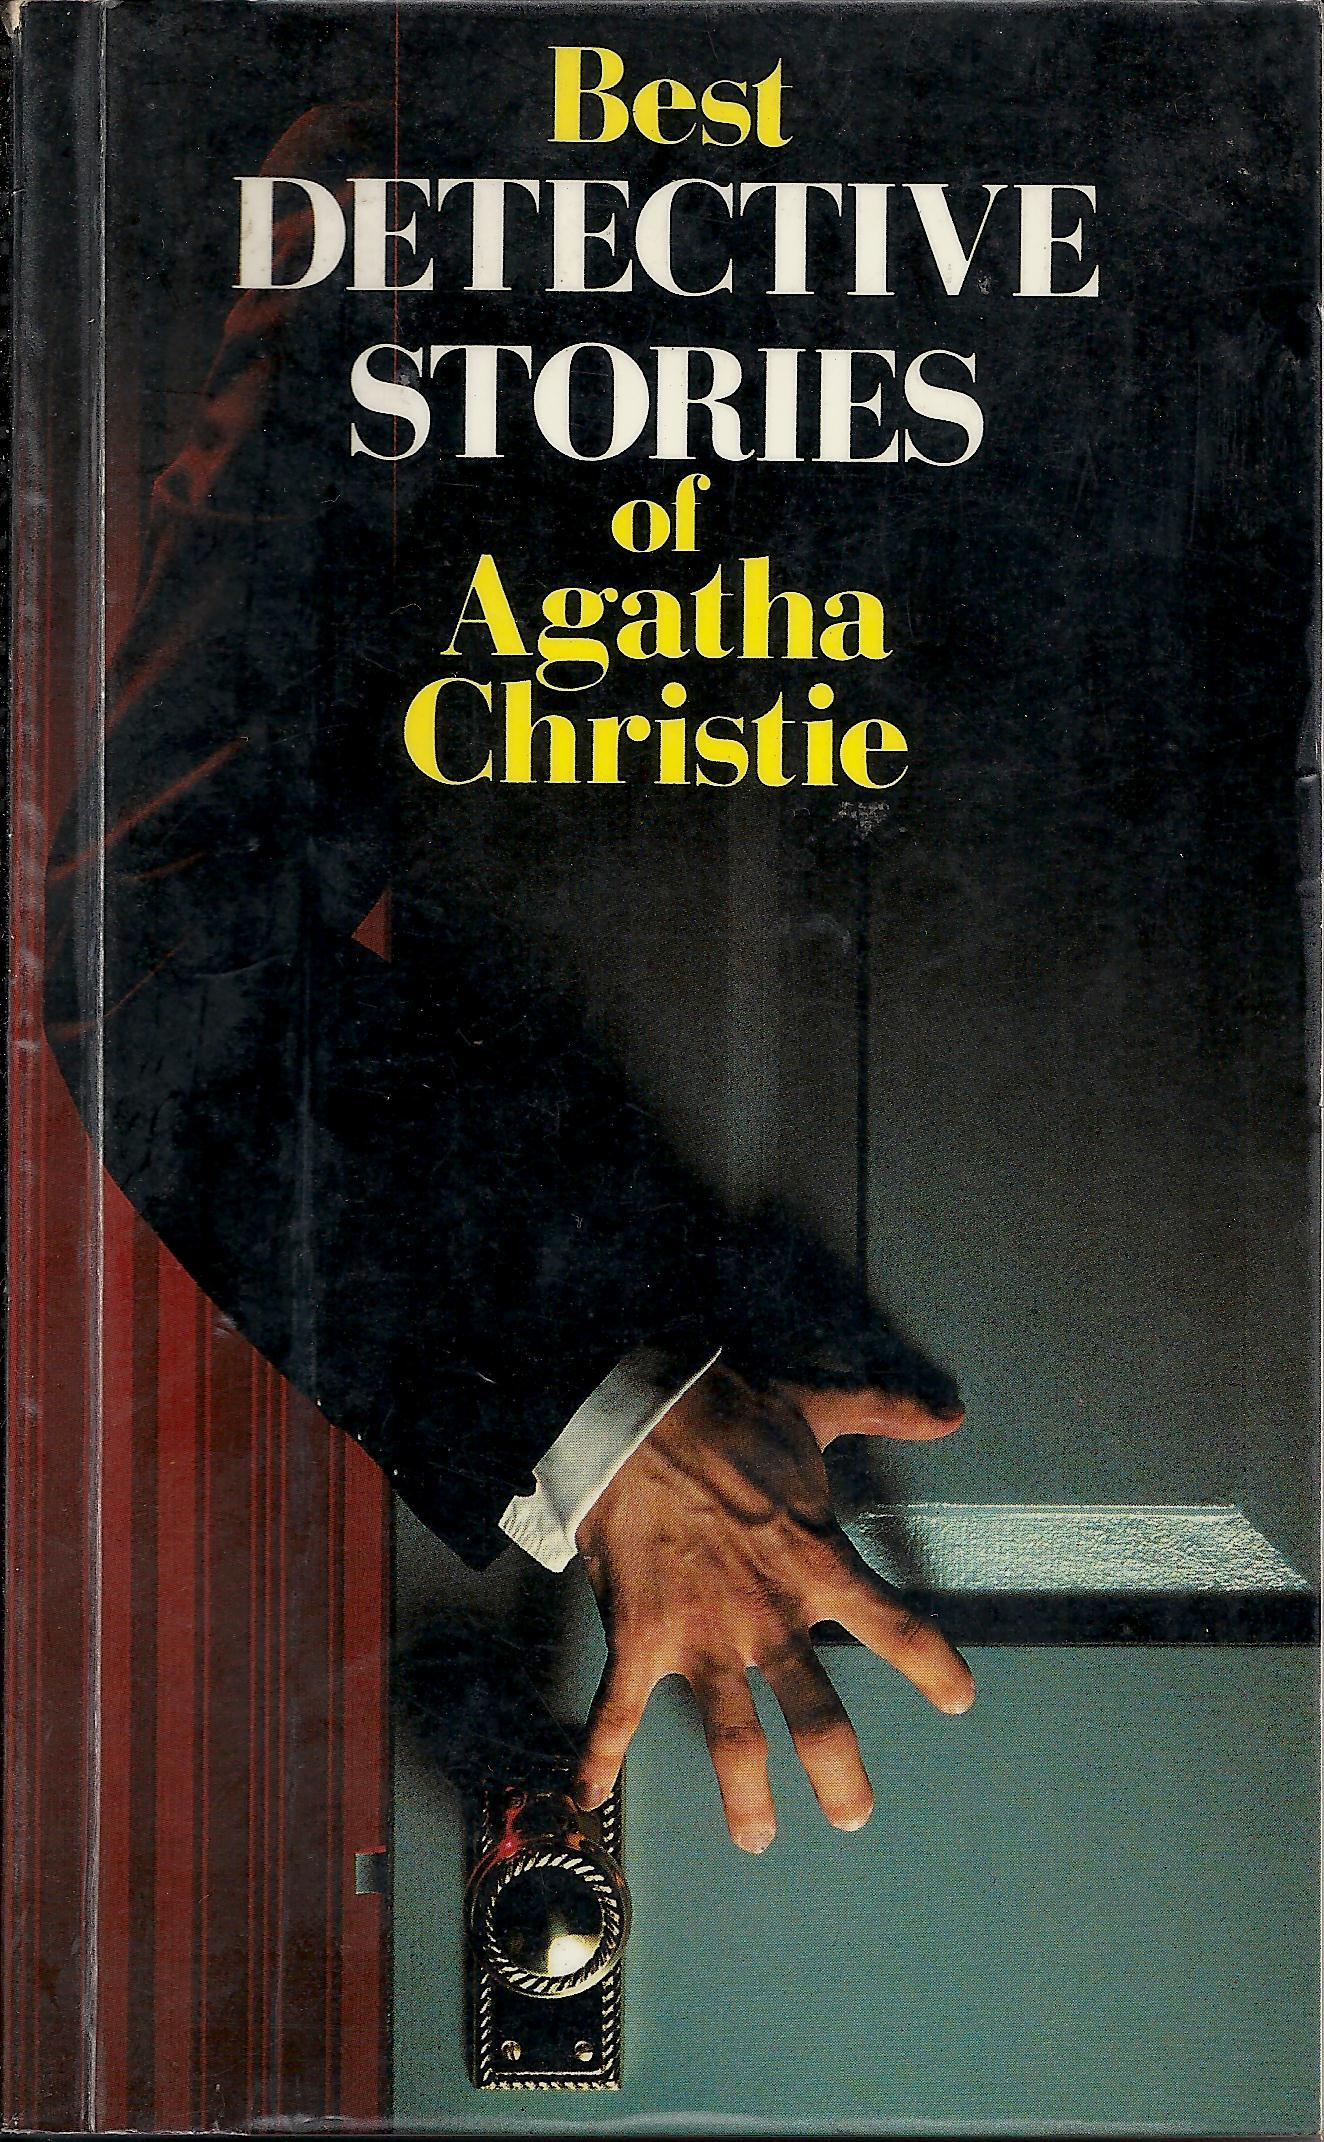 Best Detective Stories of Agatha Christie